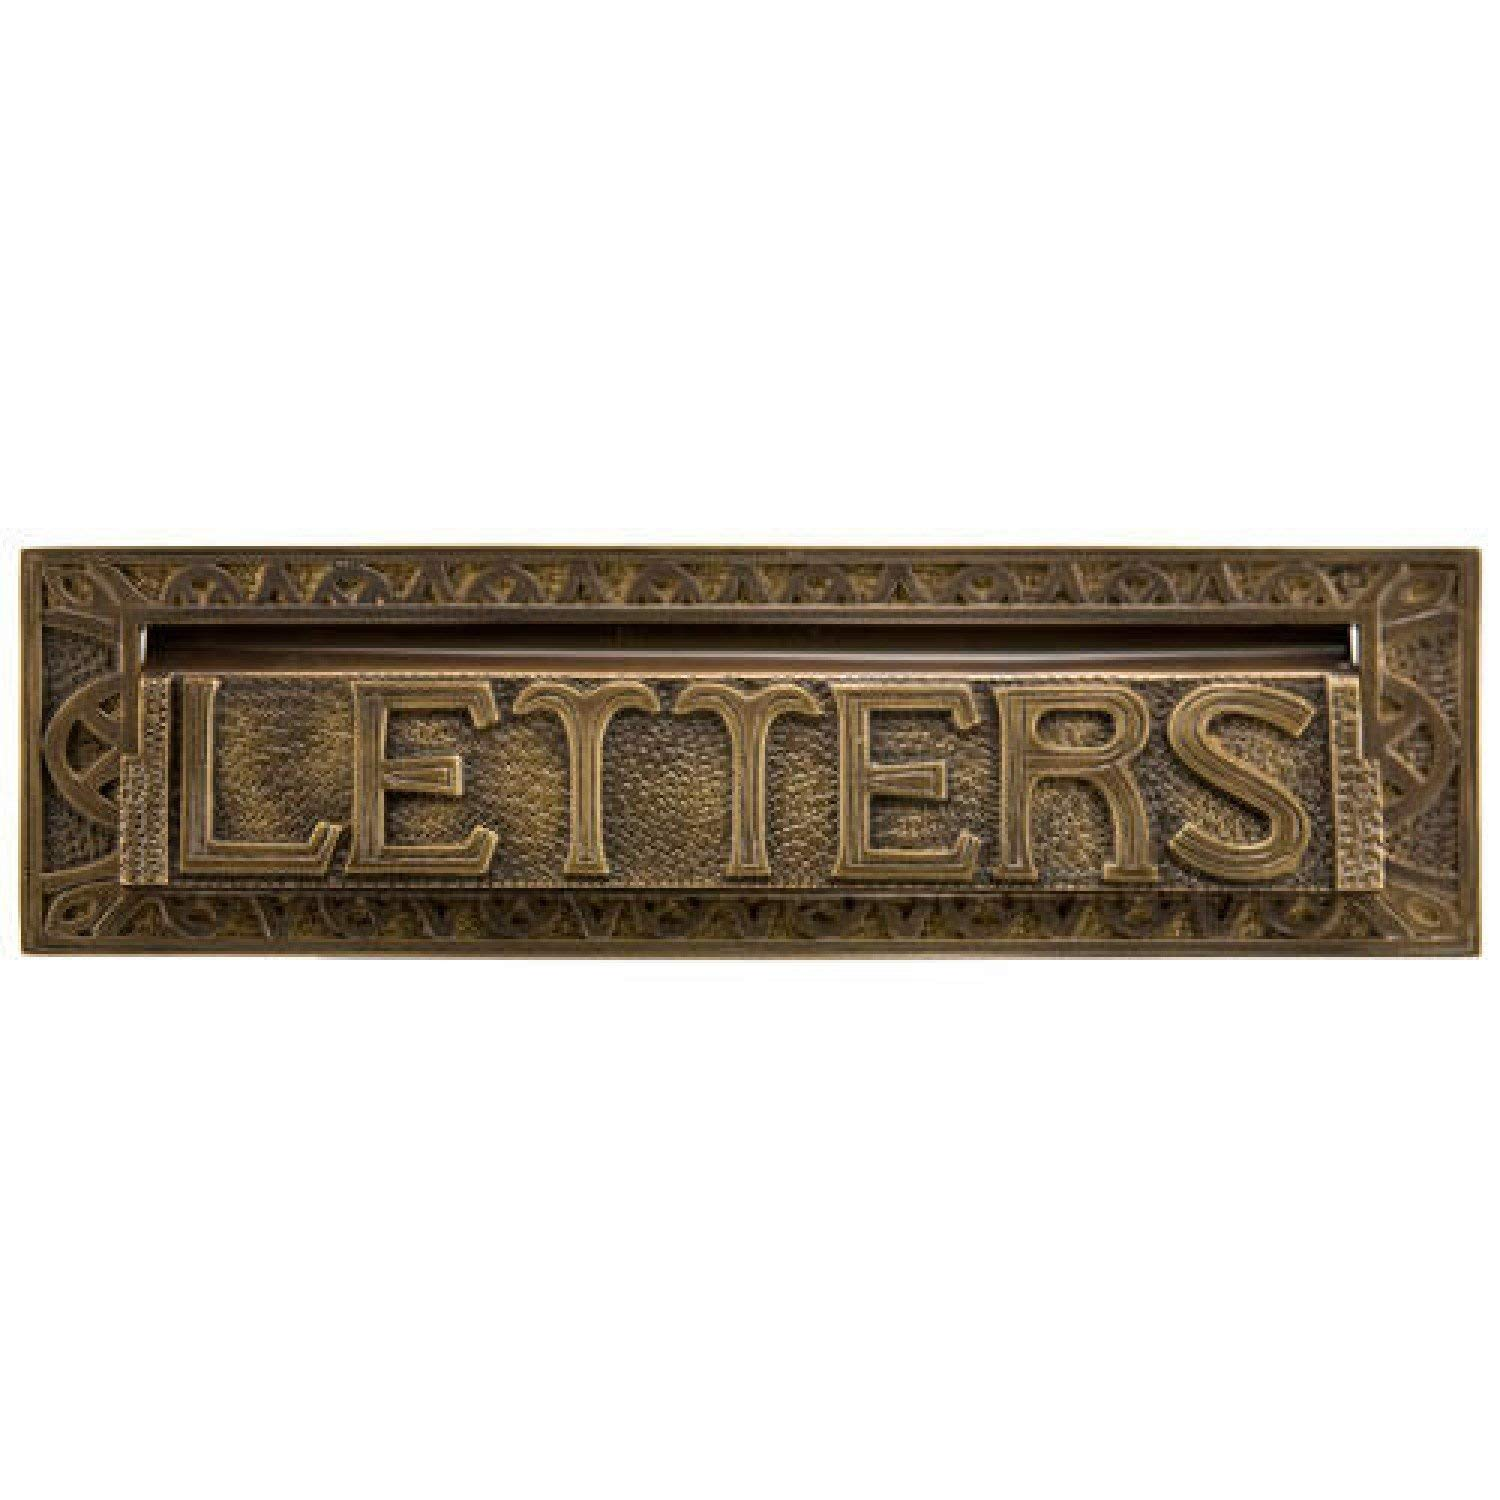 "Naiture 13"" Heavy Duty""LETTERS"" Mail Slot In Antique Brass"